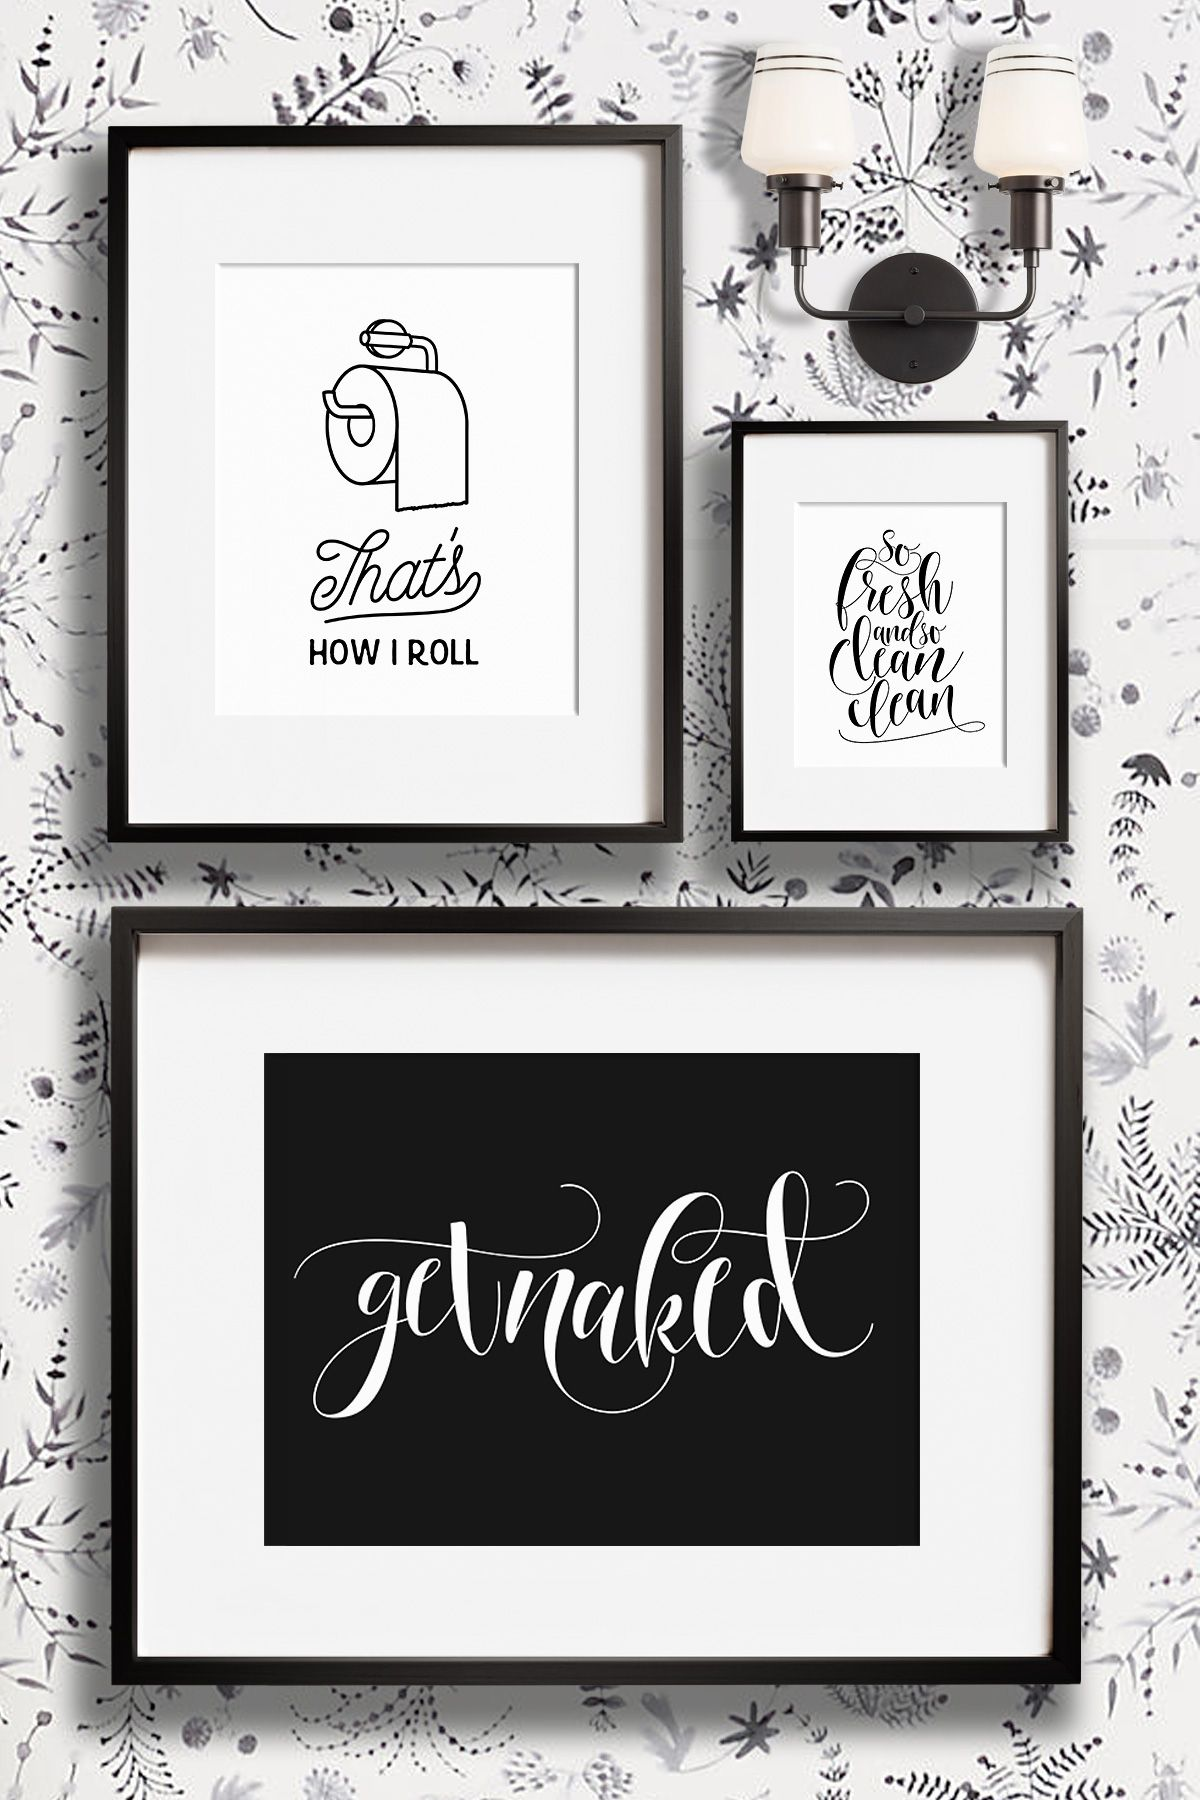 Gallery One Funny bathroom wall decor art prints Printable art and prints from The Crown Prints